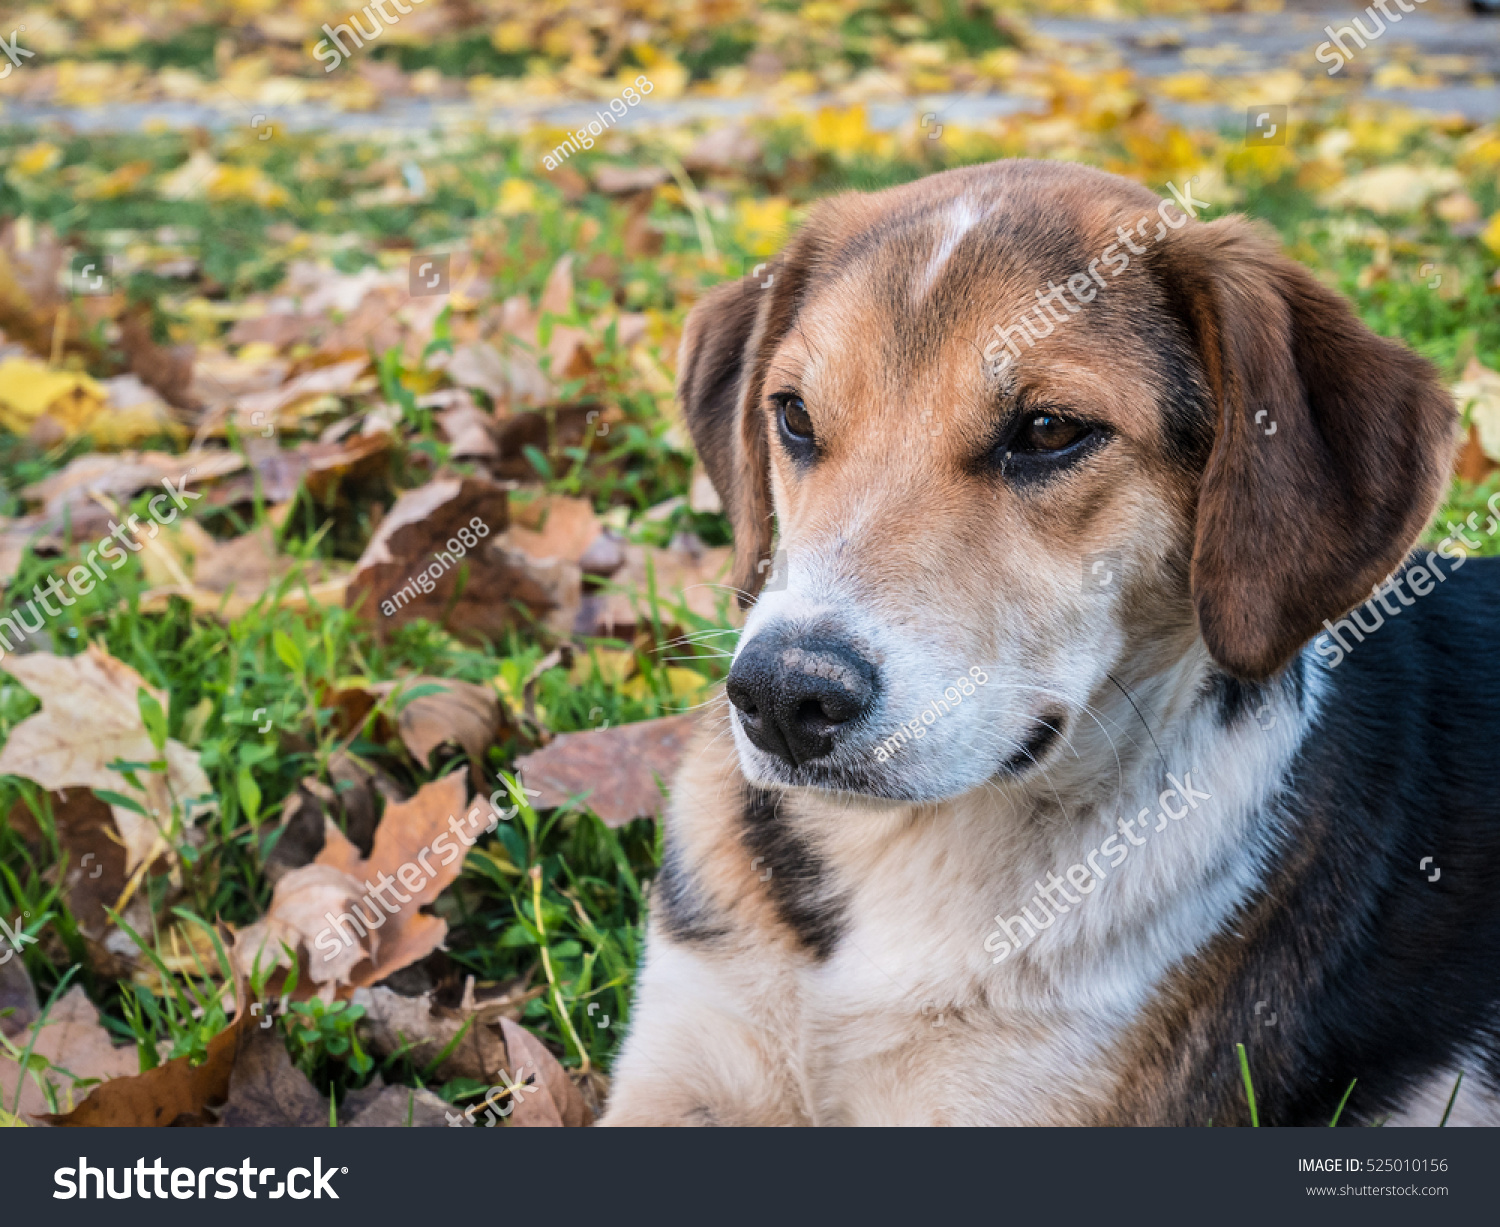 stock-photo-spotted-dog-looking-left-thoughtfully-in-the-fallen-leaves-525010156